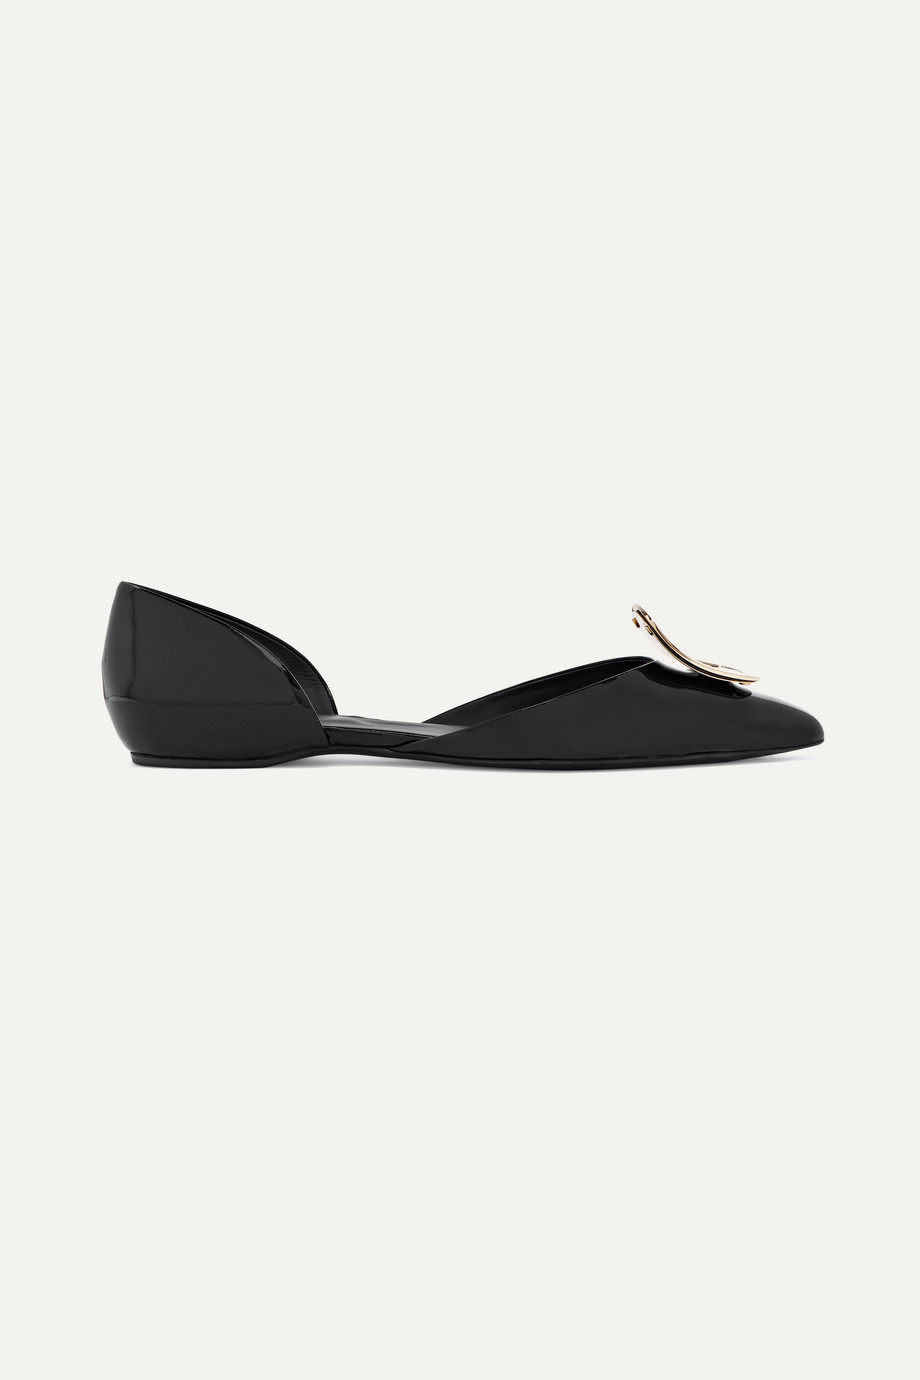 Roger Vivier Dorsay patent-leather point-toe flats